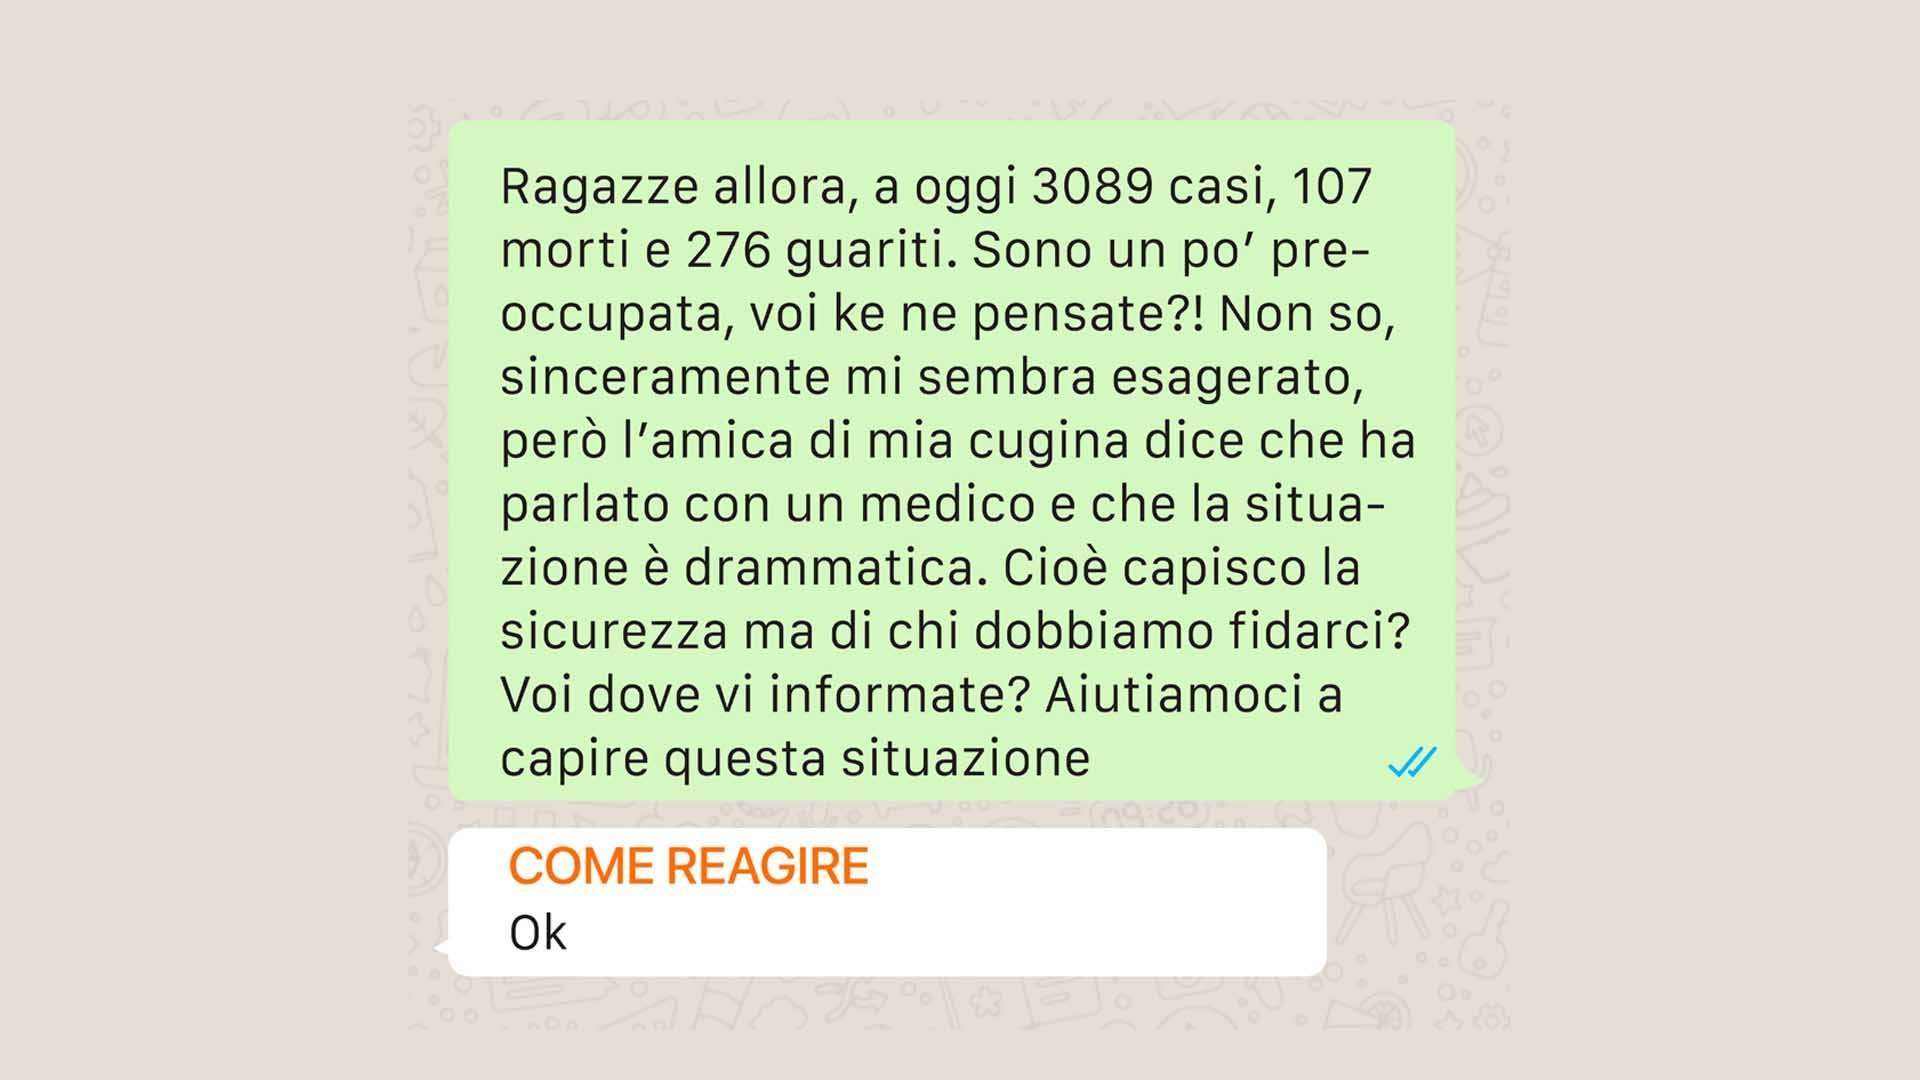 Il retroscena